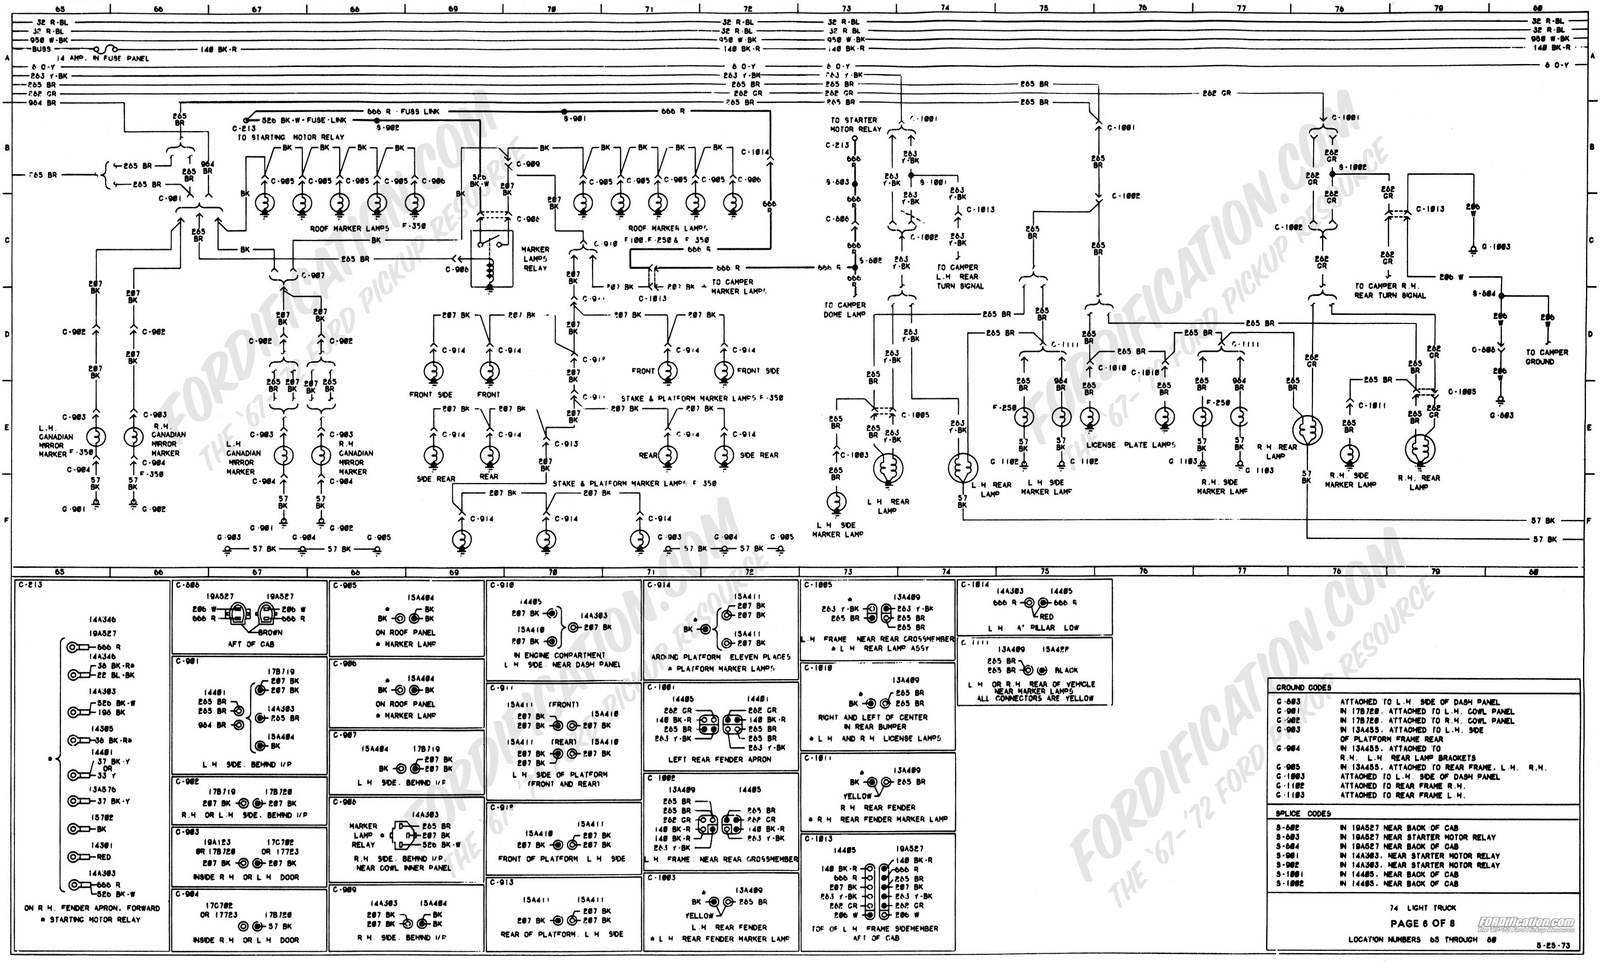 2001 ford f150 headlight wiring diagram 95 s10 brake light switch f 150 questions are the taillights wired to